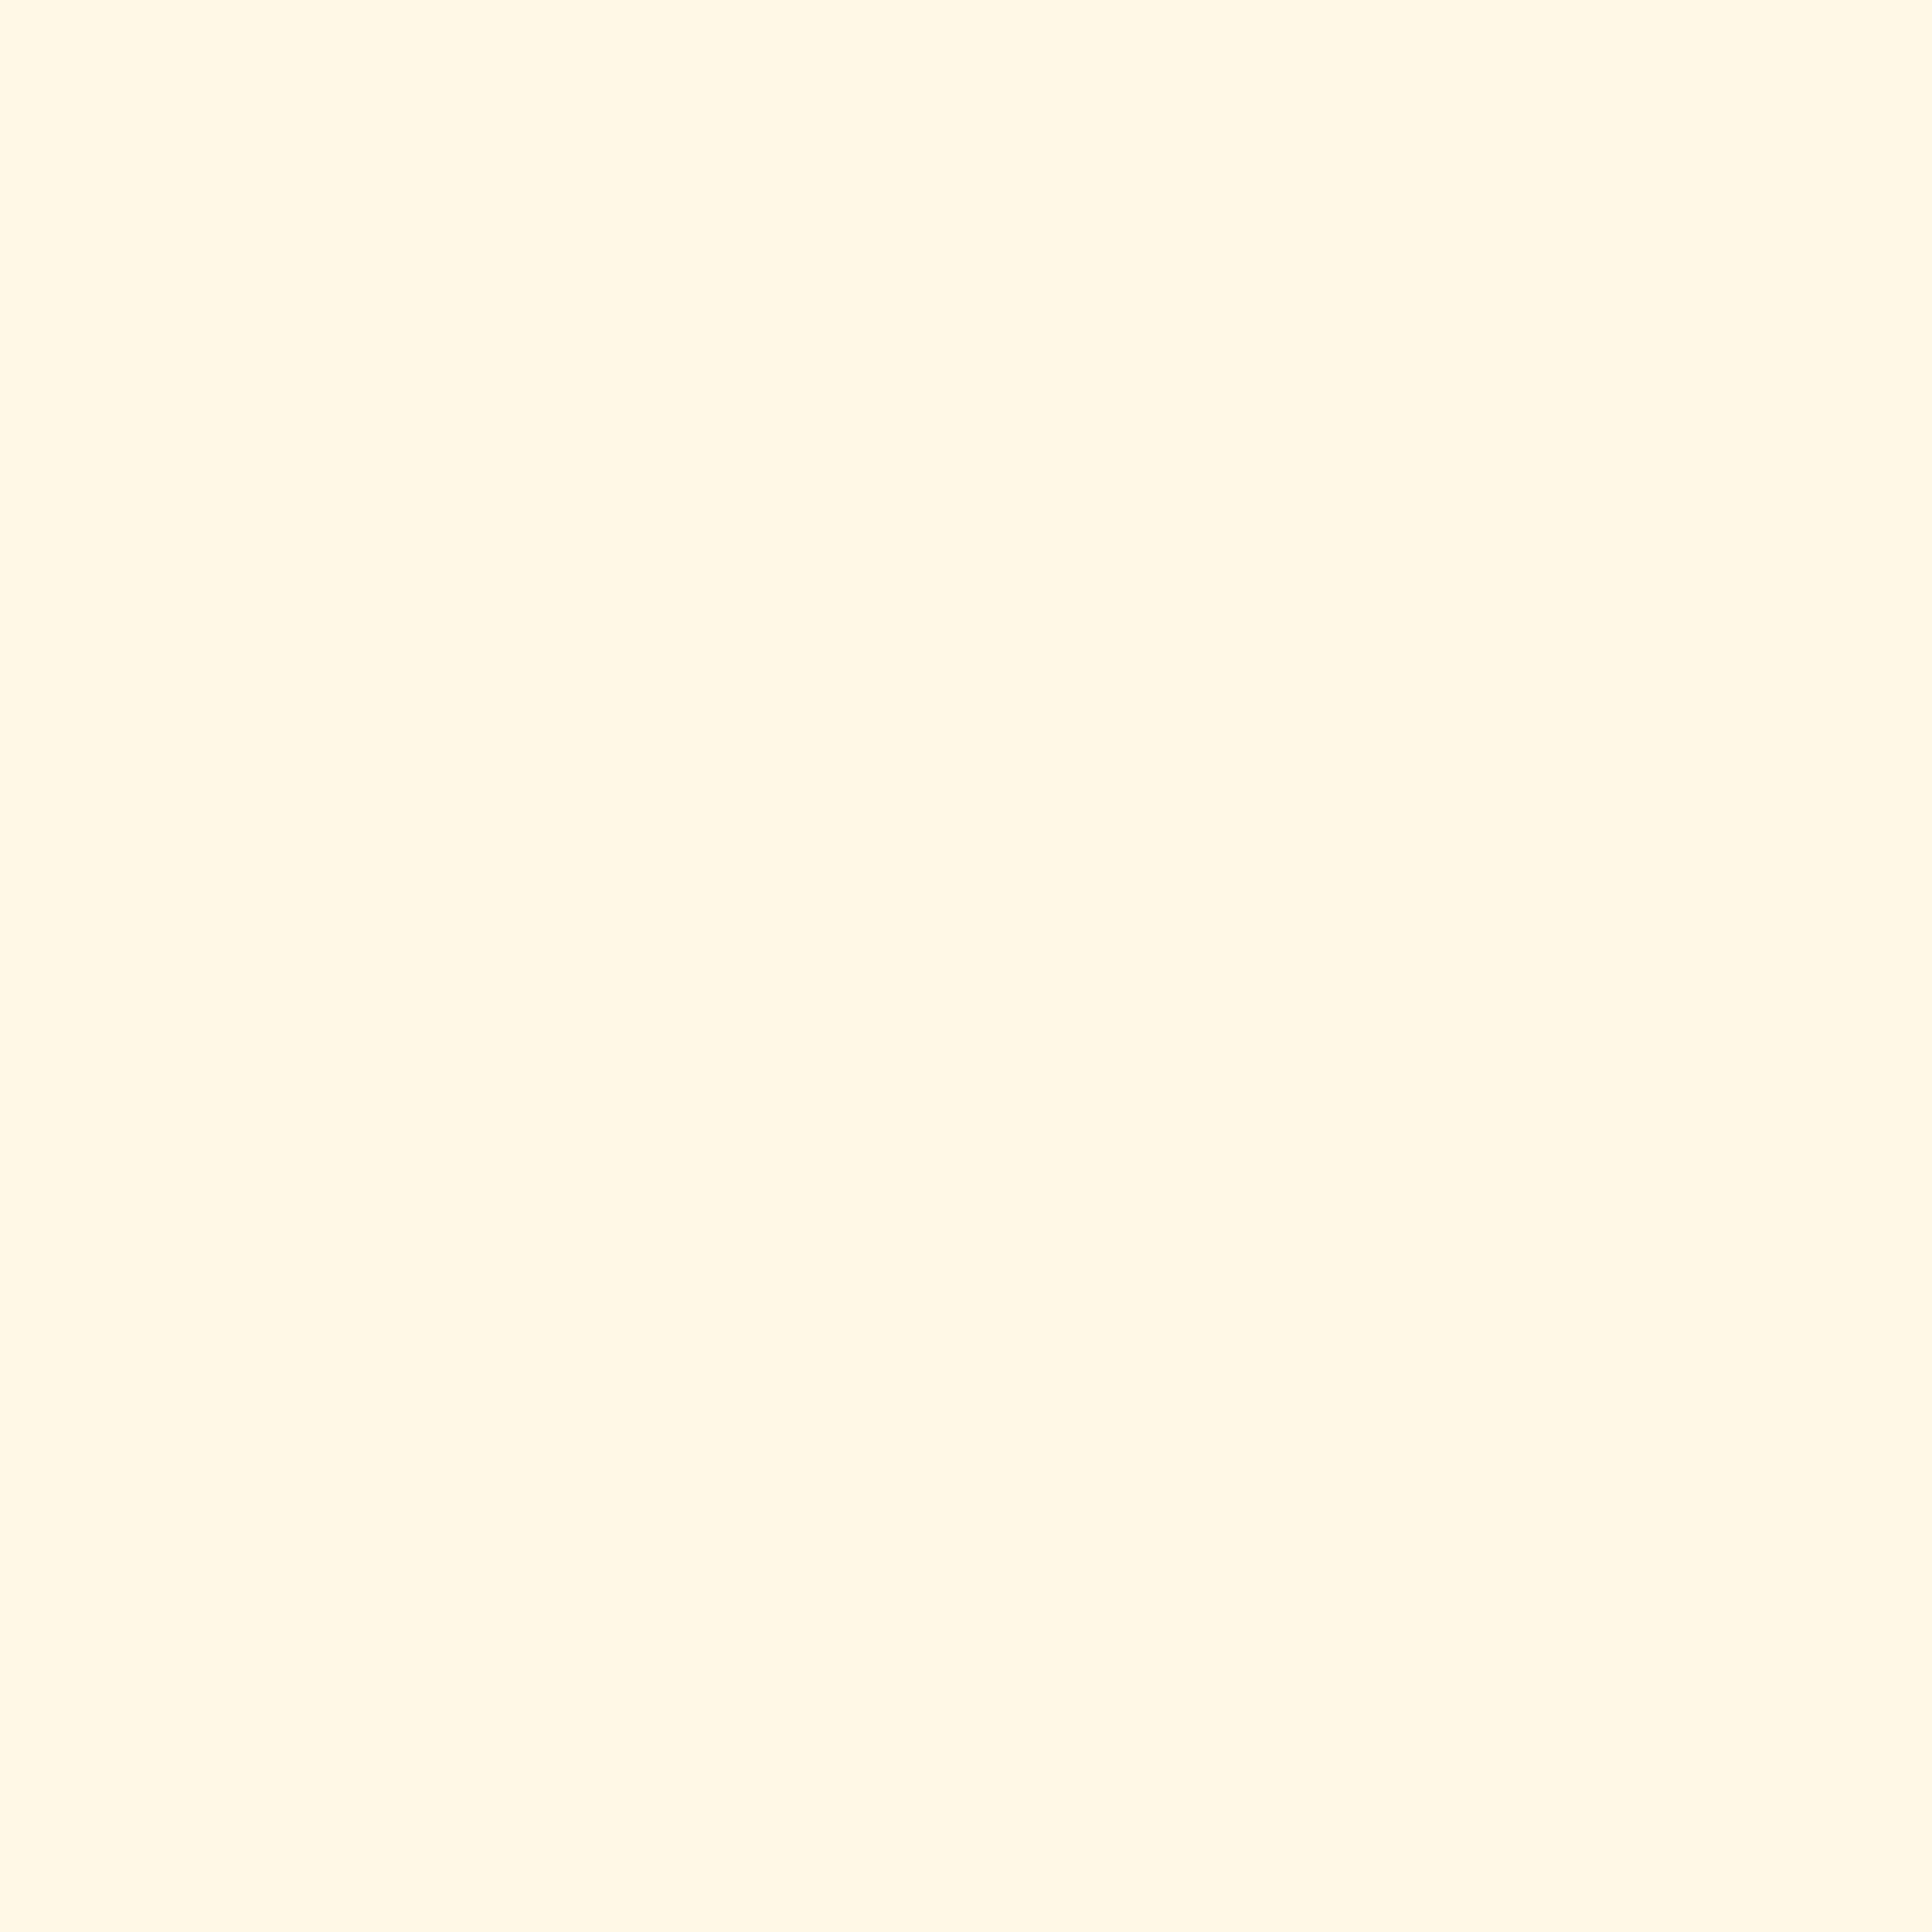 2732x2732 Cosmic Latte Solid Color Background